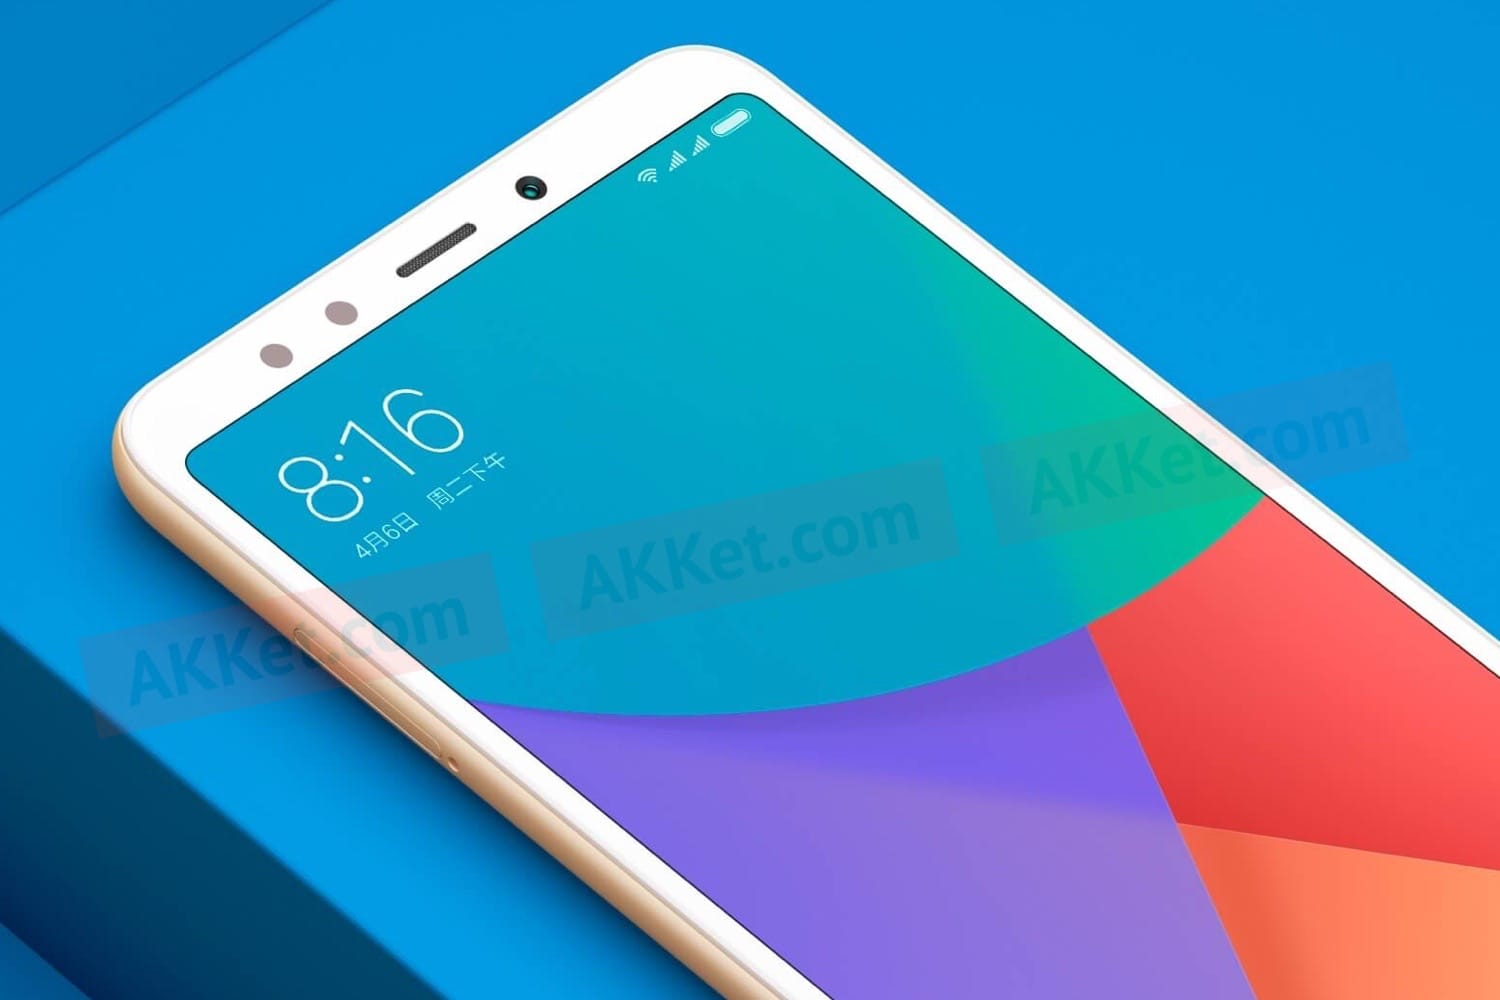 https://akket.com/wp-content/uploads/2017/11/Xiaomi-R1-Photo-Image-Official-4.jpg